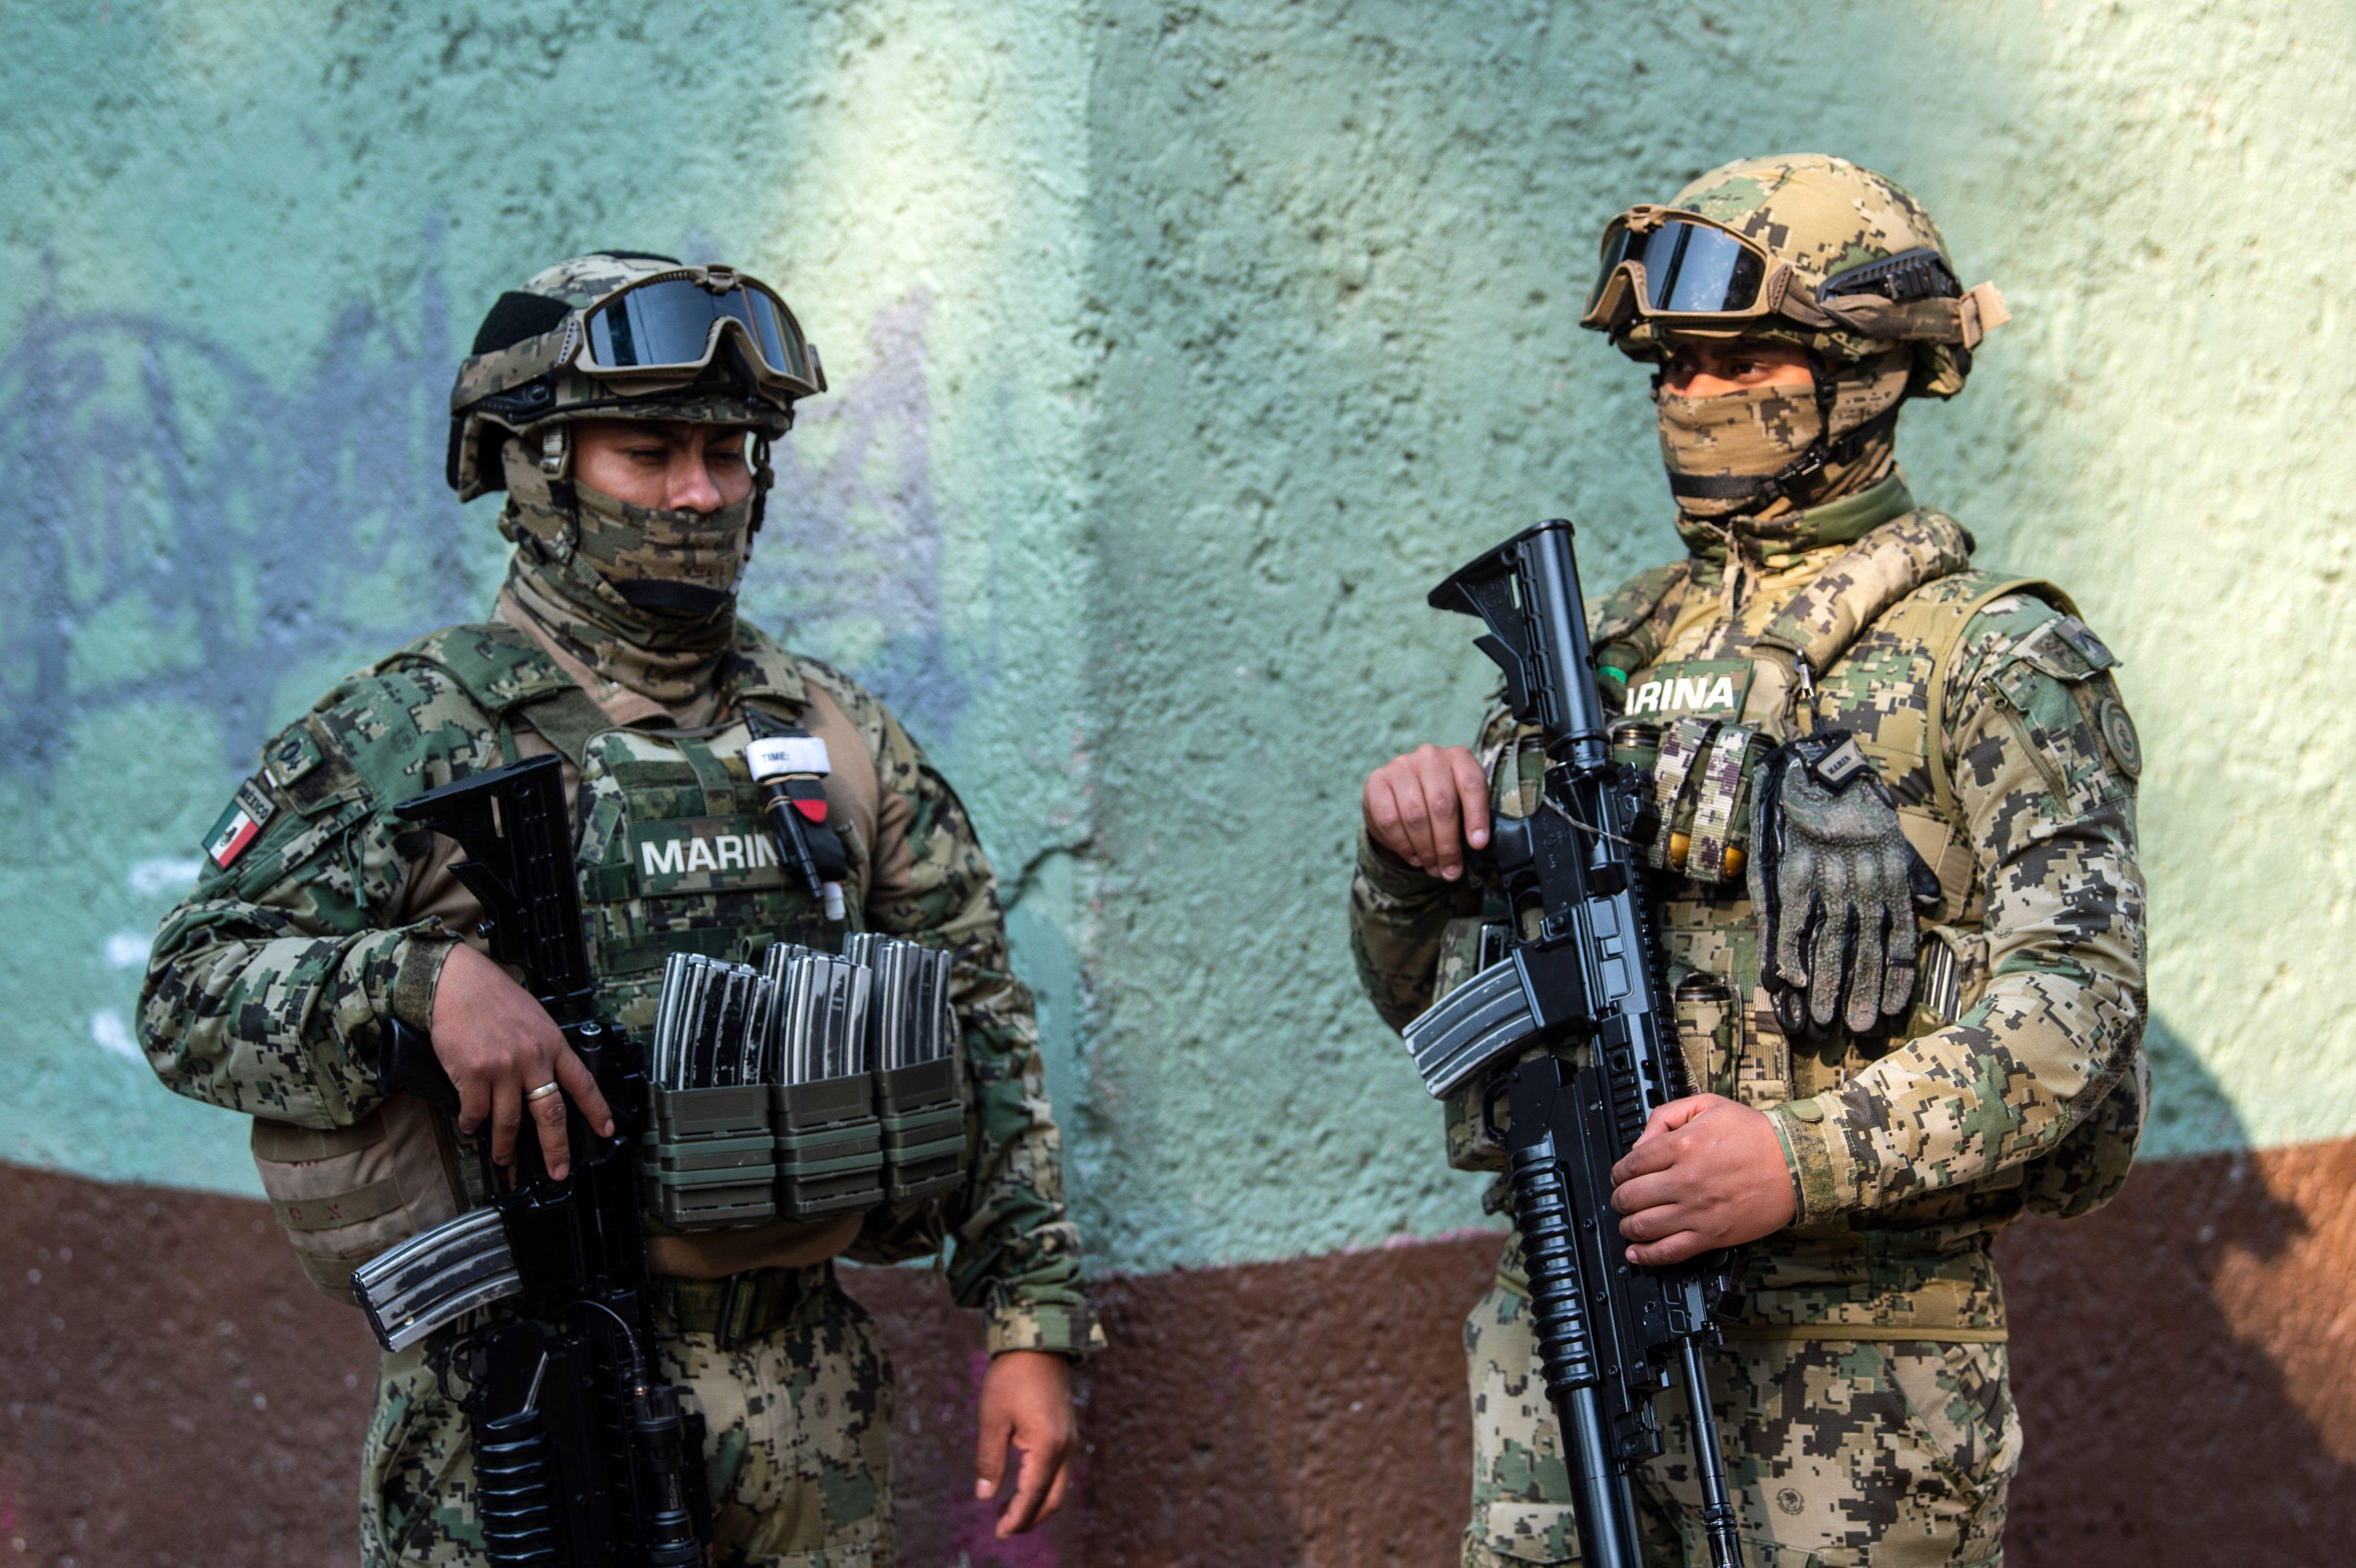 Mexico Navy members in Mexico City. (Photo by PEDRO PARDO/AFP via Getty Images)